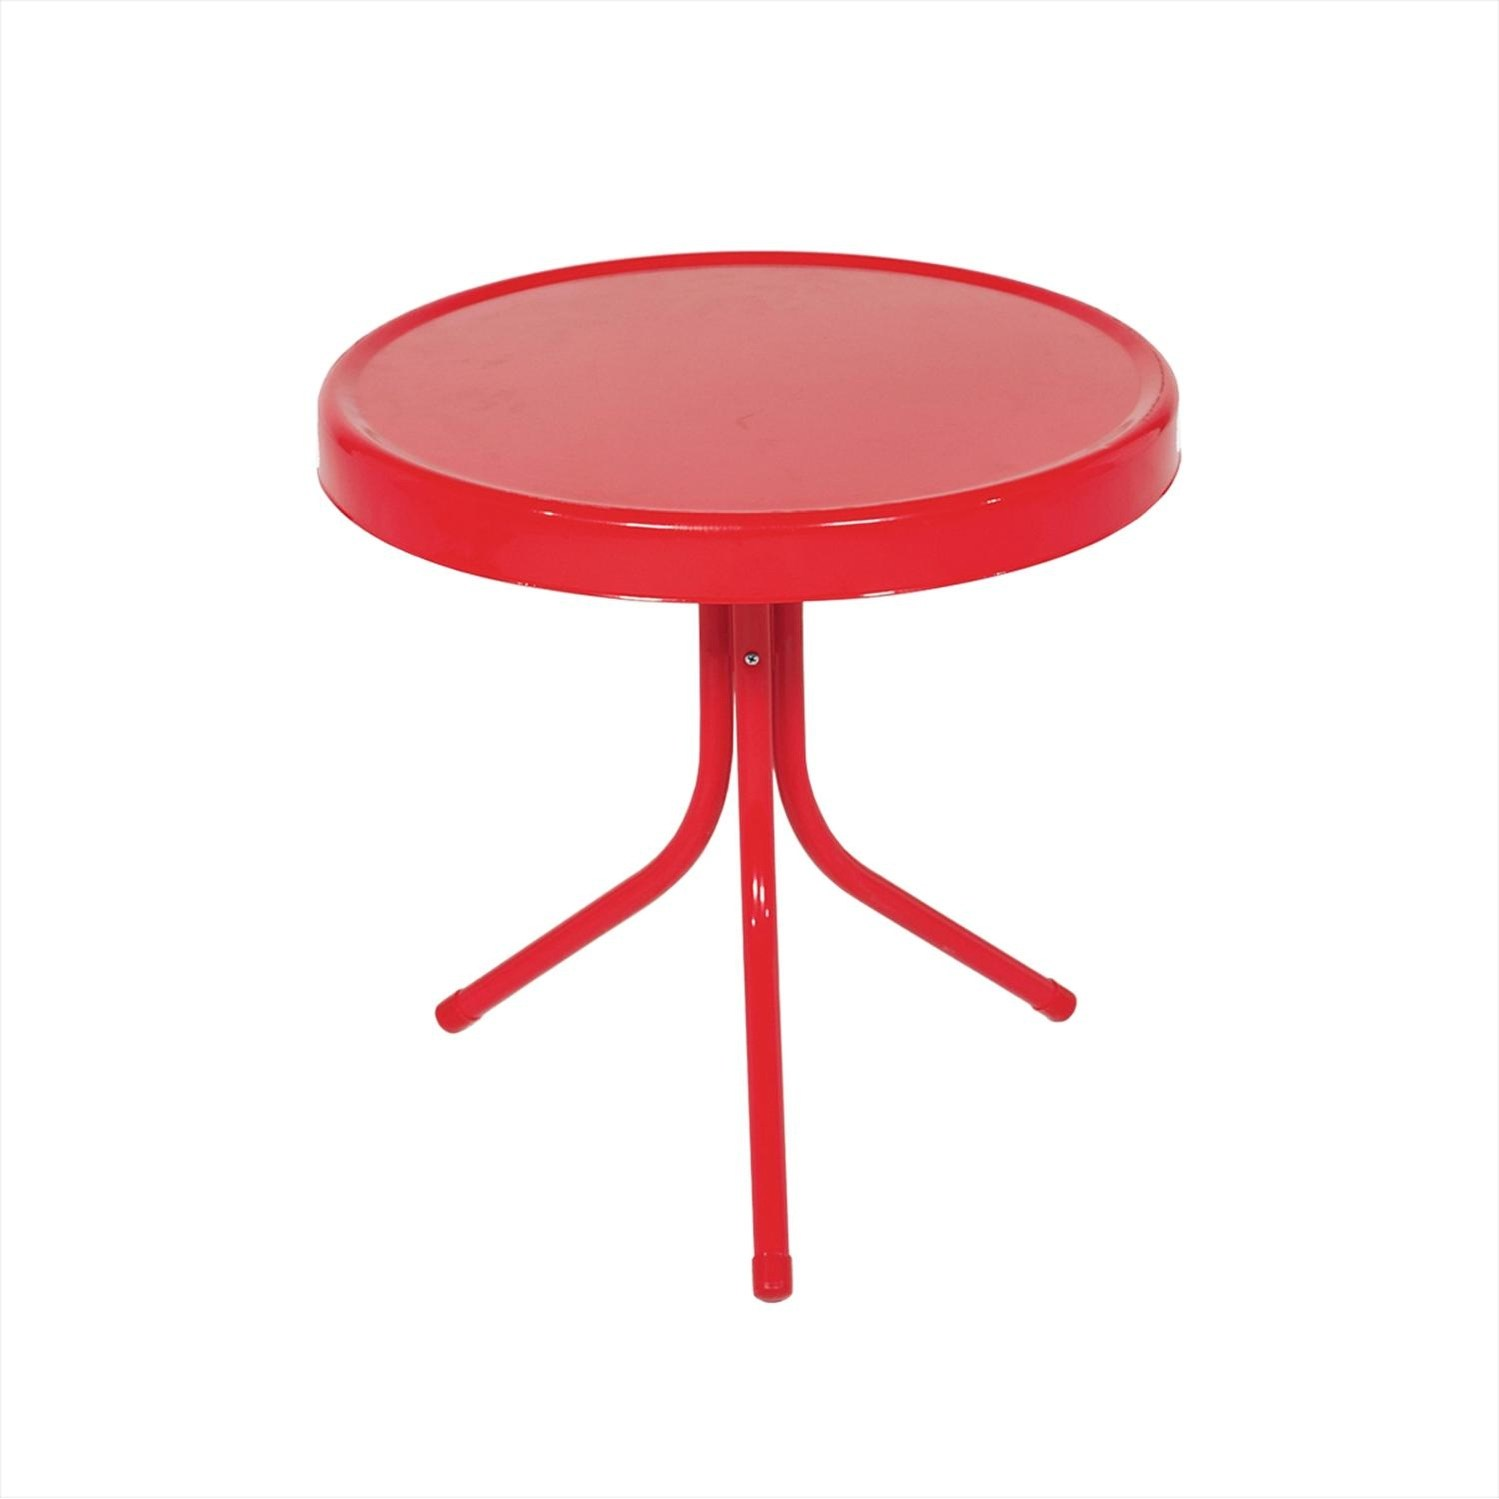 vibrant red retro metal tulip outdoor side table free accent shipping today telephone and seat tripod standing patio umbrella lamps under diy dining replica iconic furniture